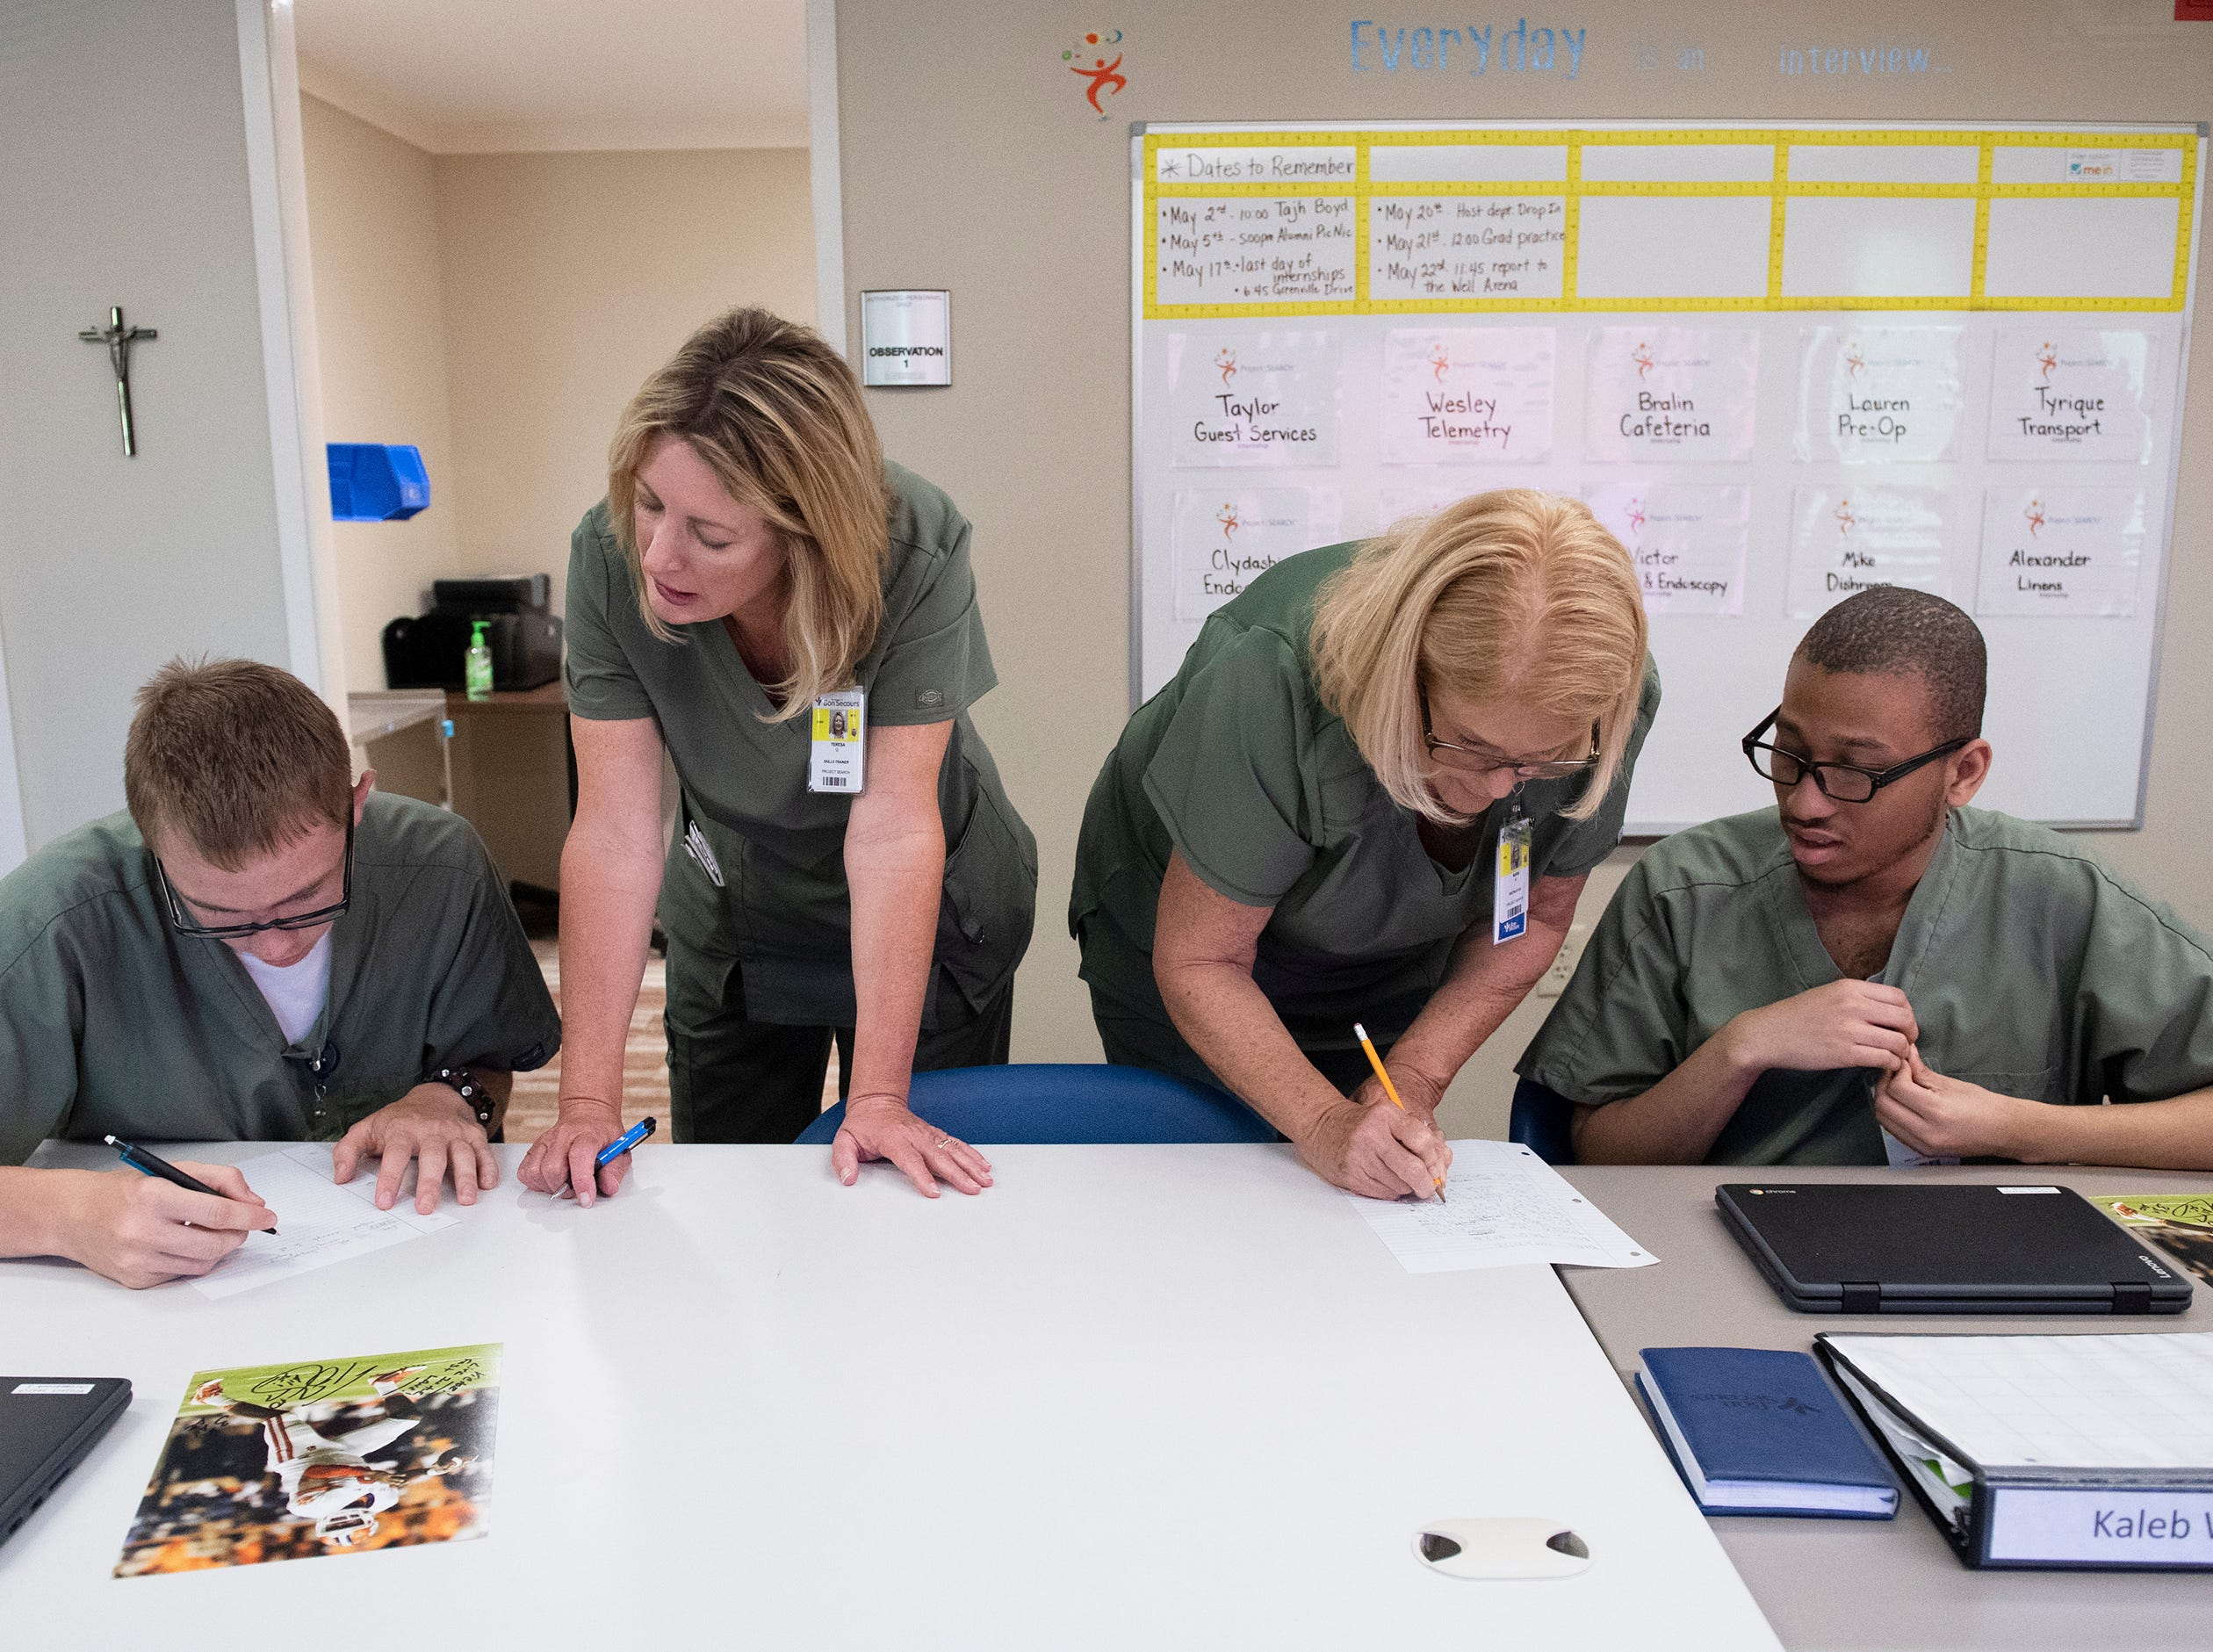 Project SEARCH skills trainer Teresa Gibson (second from left) and support instructor Marie Miller work with students Victor Cantrell (left) and Kaleb Watkins (right) in class Thursday, May 2, 2019.